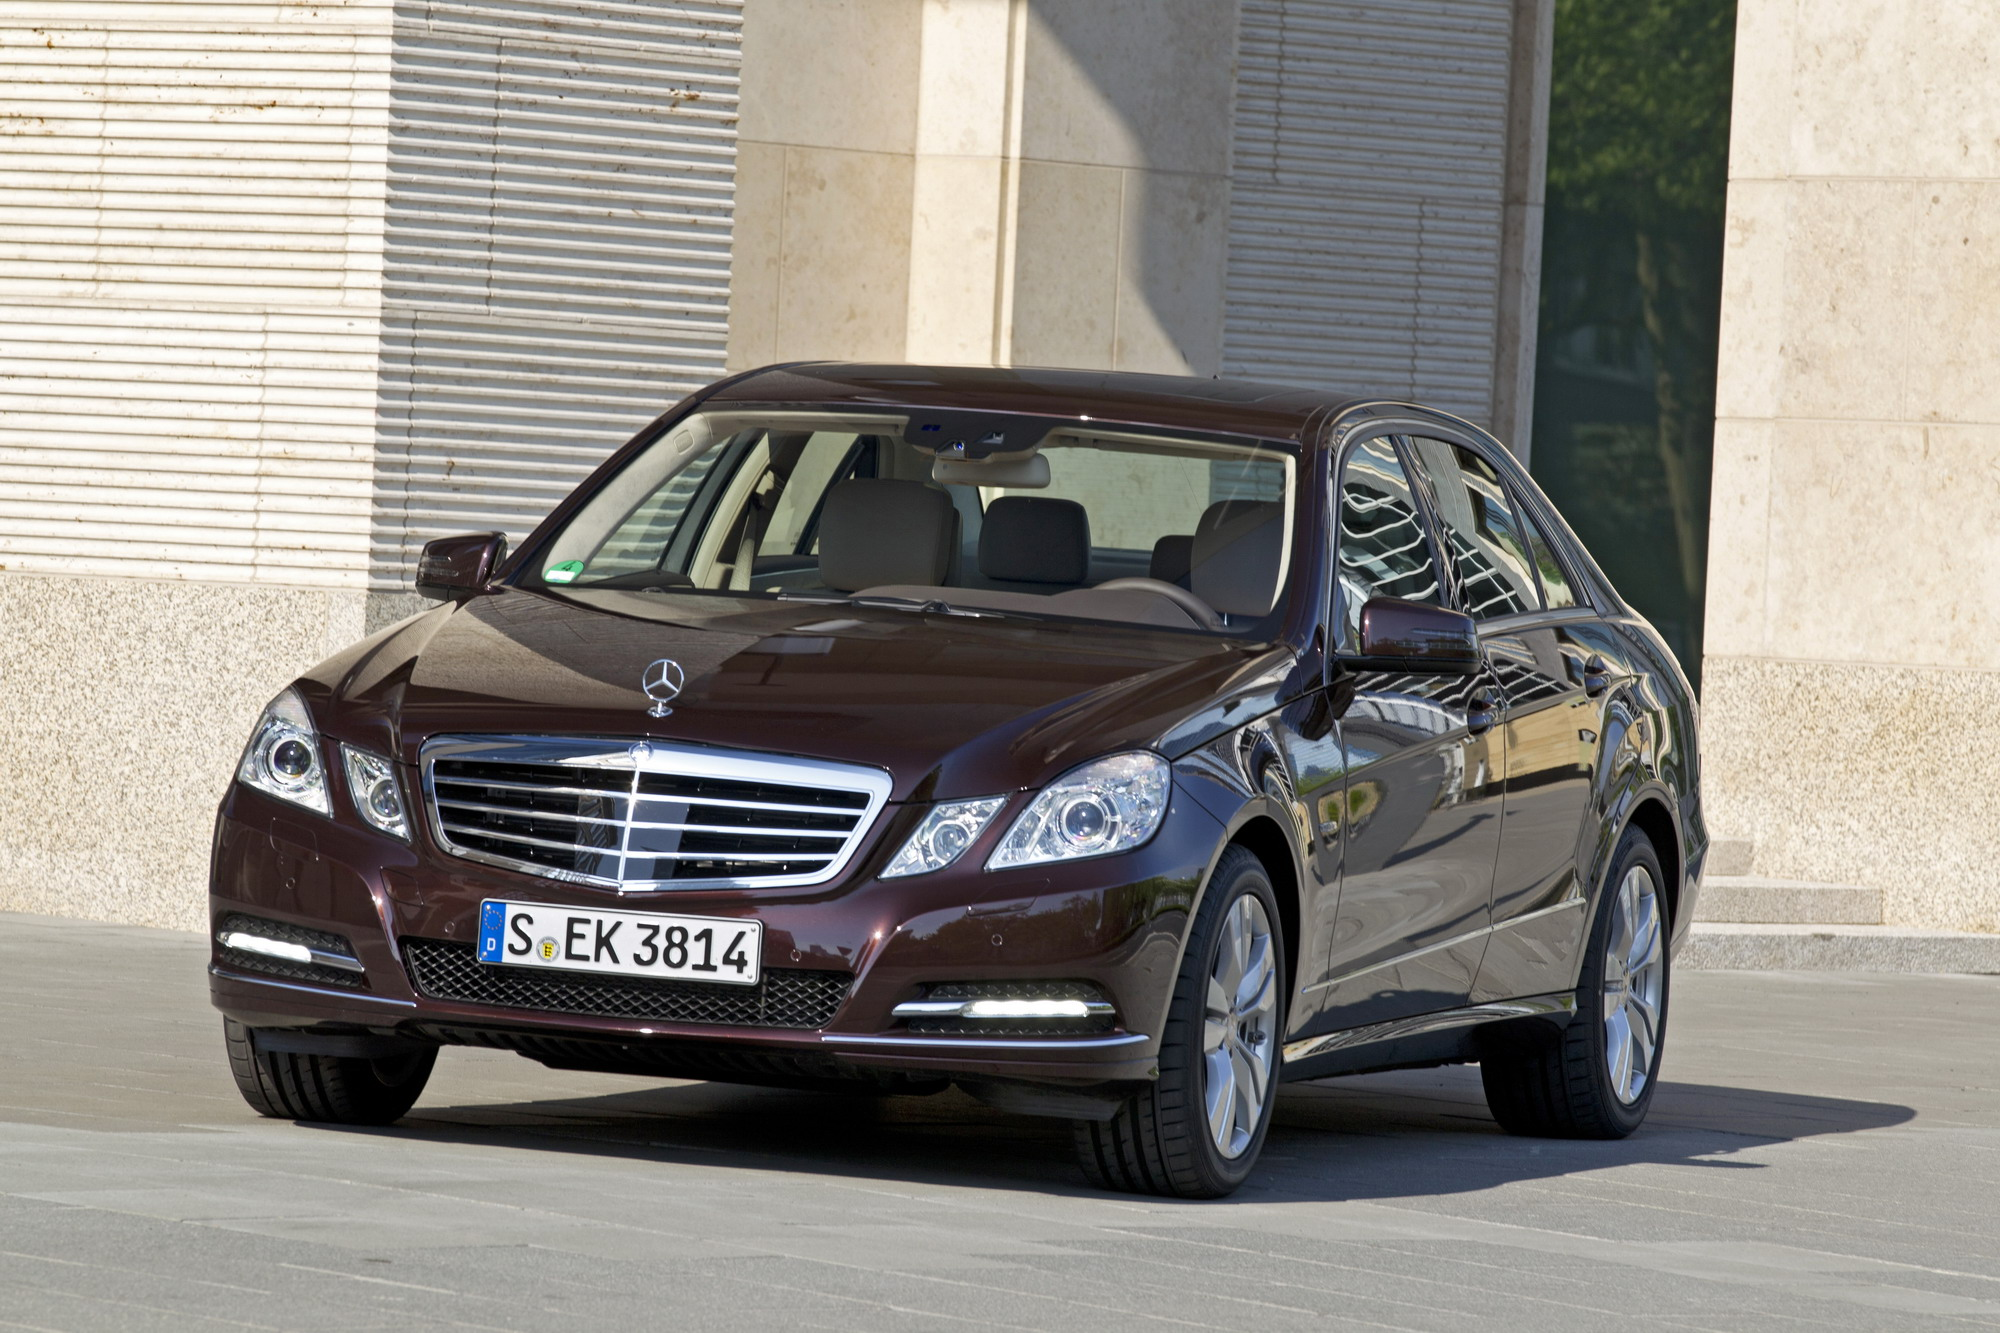 2009 2012 mercedes benz e class review gallery top speed. Black Bedroom Furniture Sets. Home Design Ideas